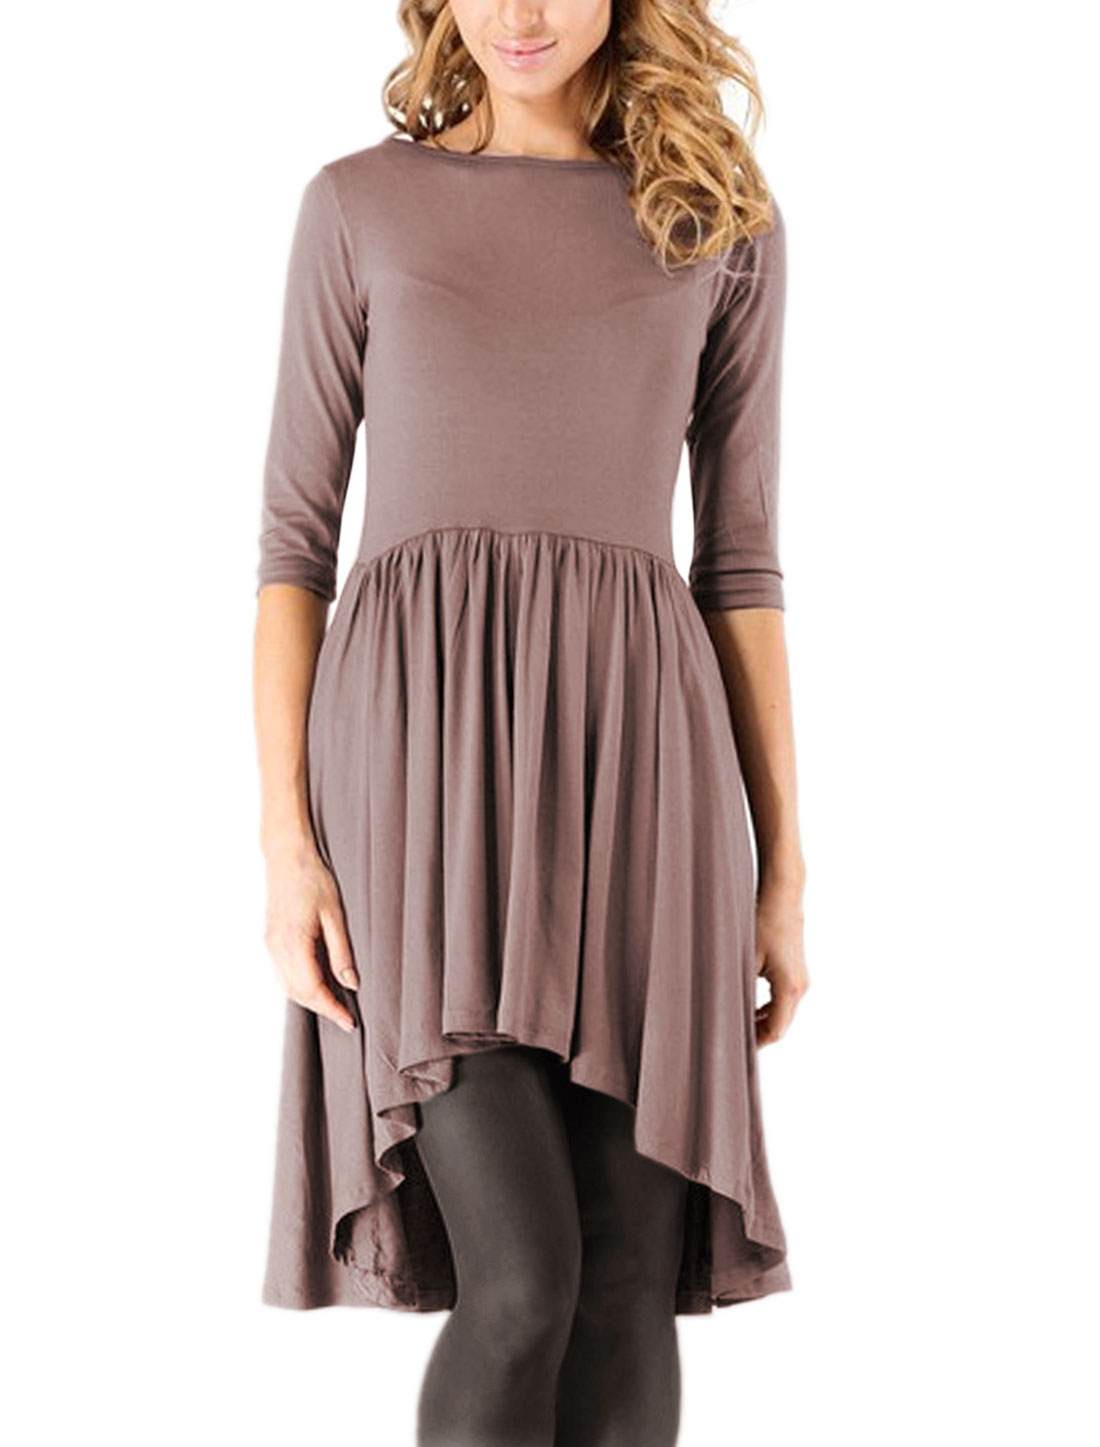 Women 3/4 Sleeves Pleated Asymmetric Hem Tunic Top Purple M